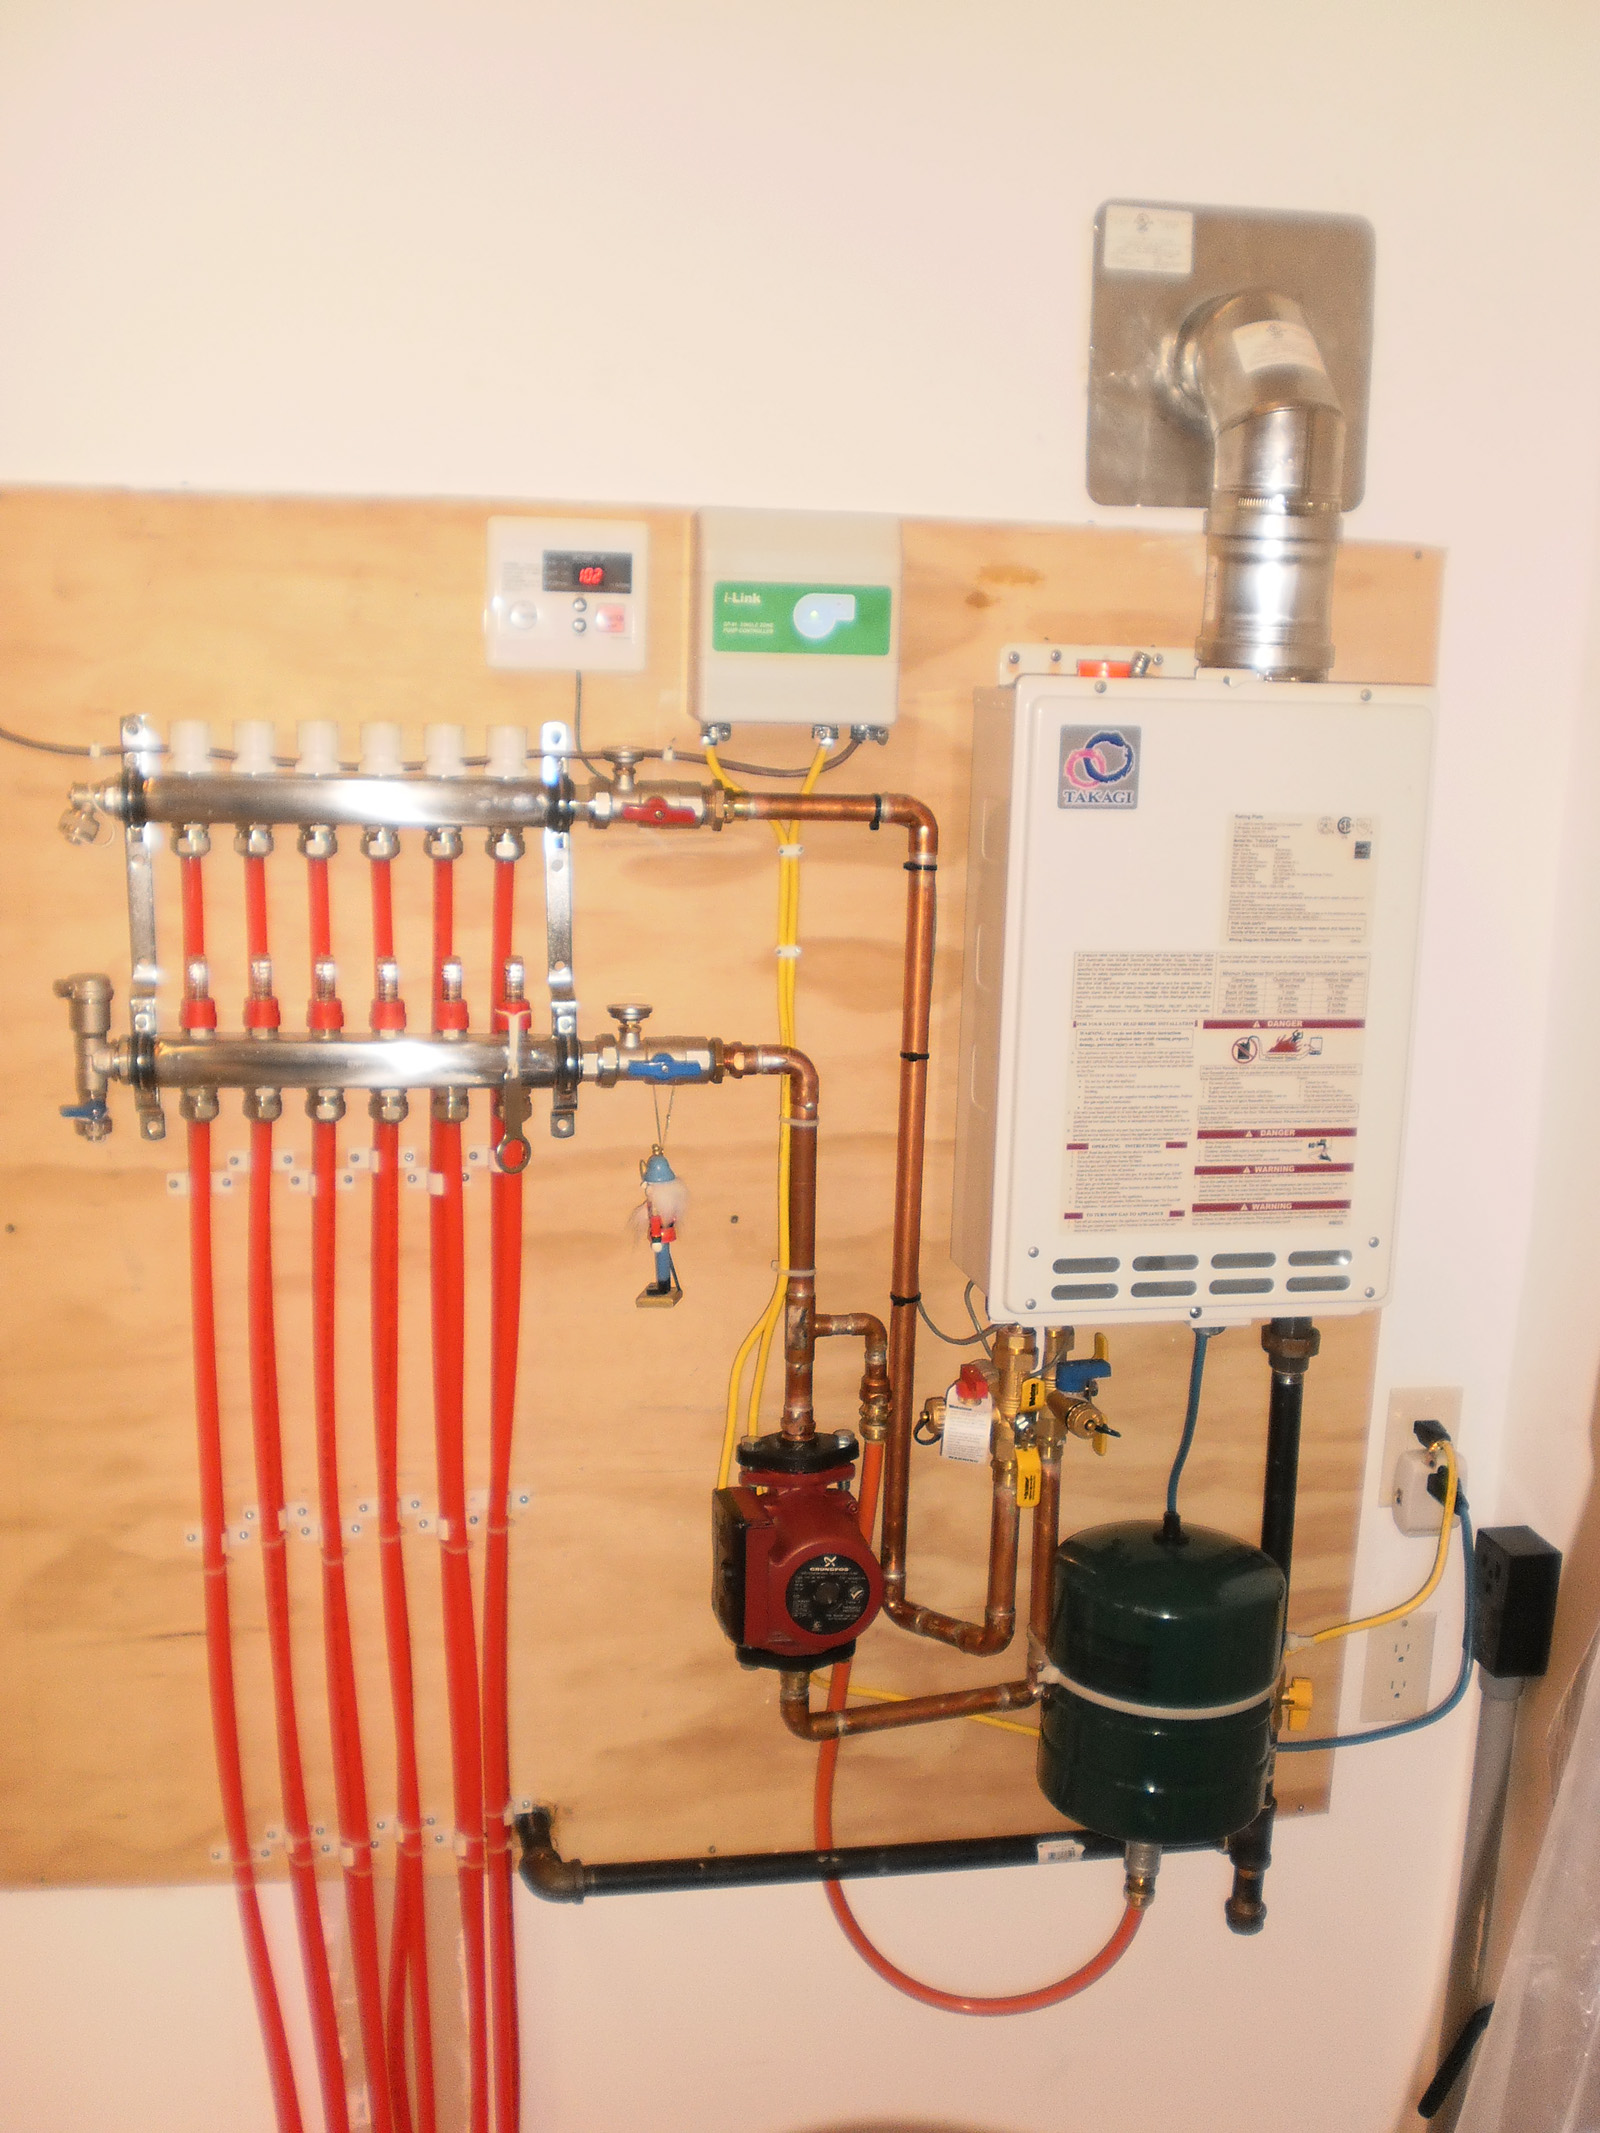 plumbing manifold diagram wiring of a house hydronic floor system heat boiler design